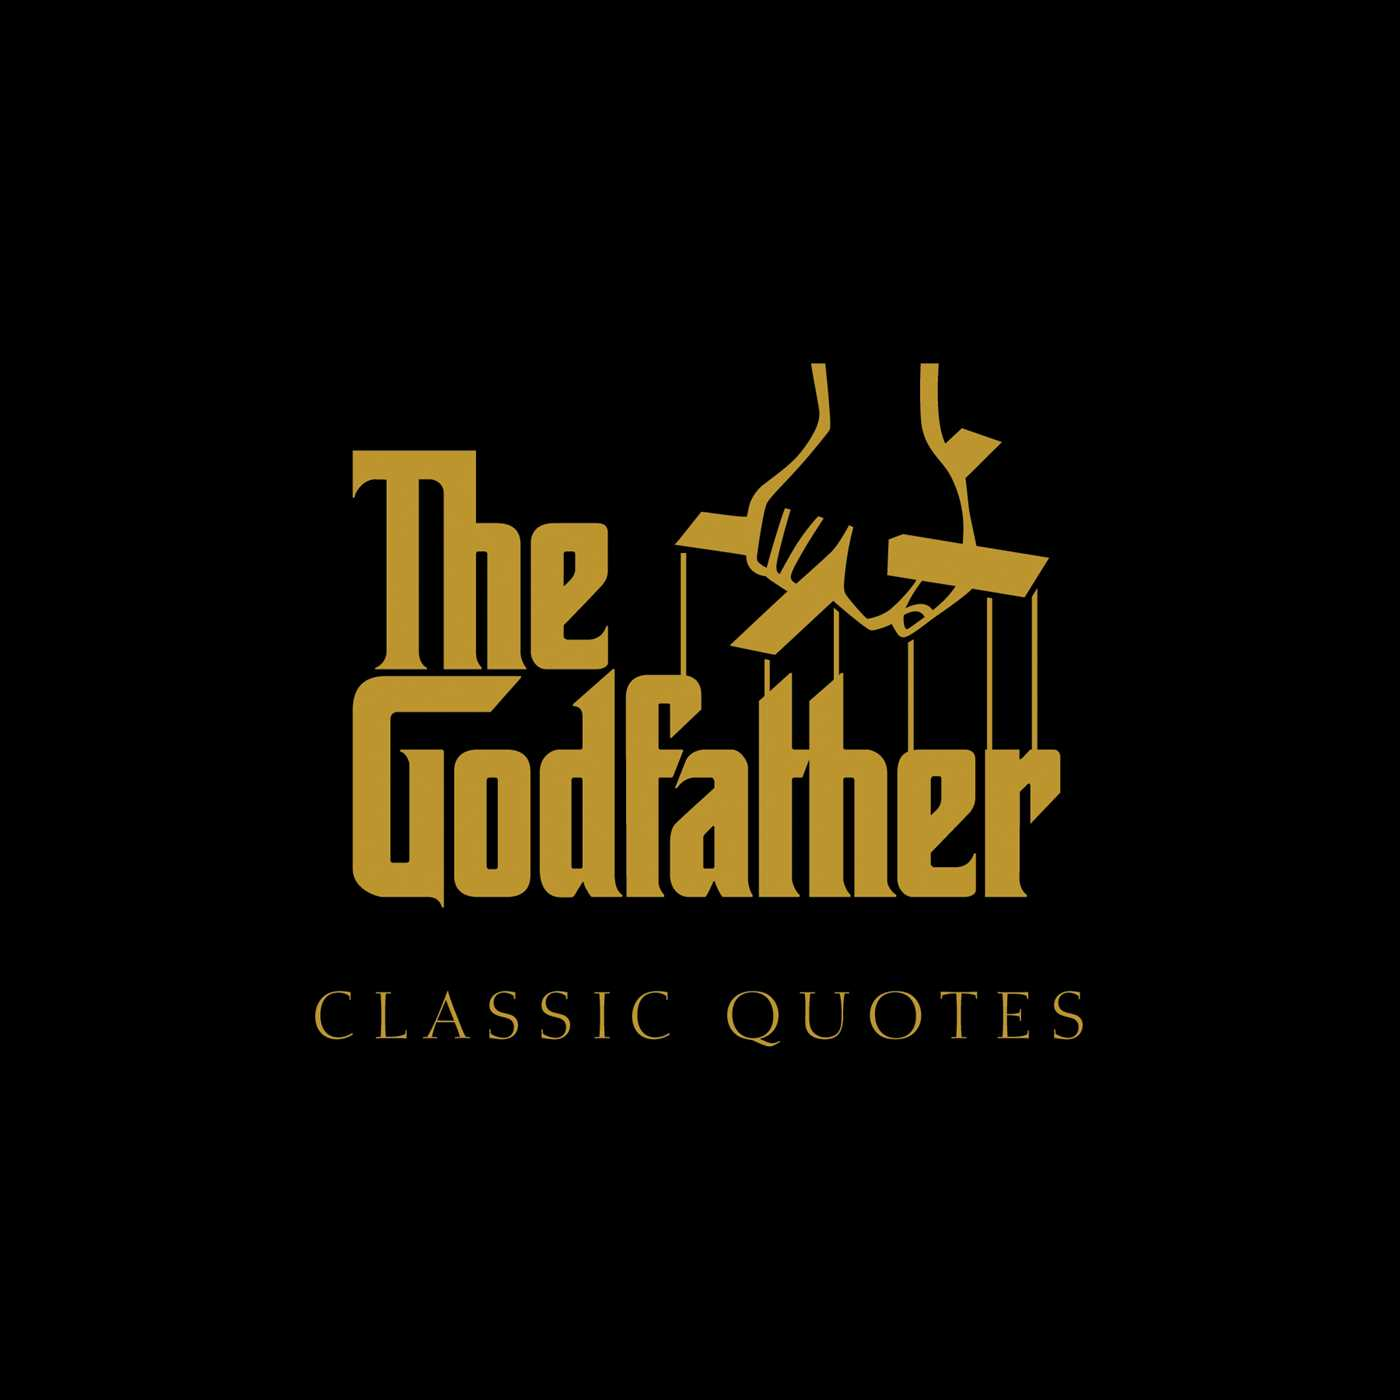 Godfather classic quotes 9781604334166 hr